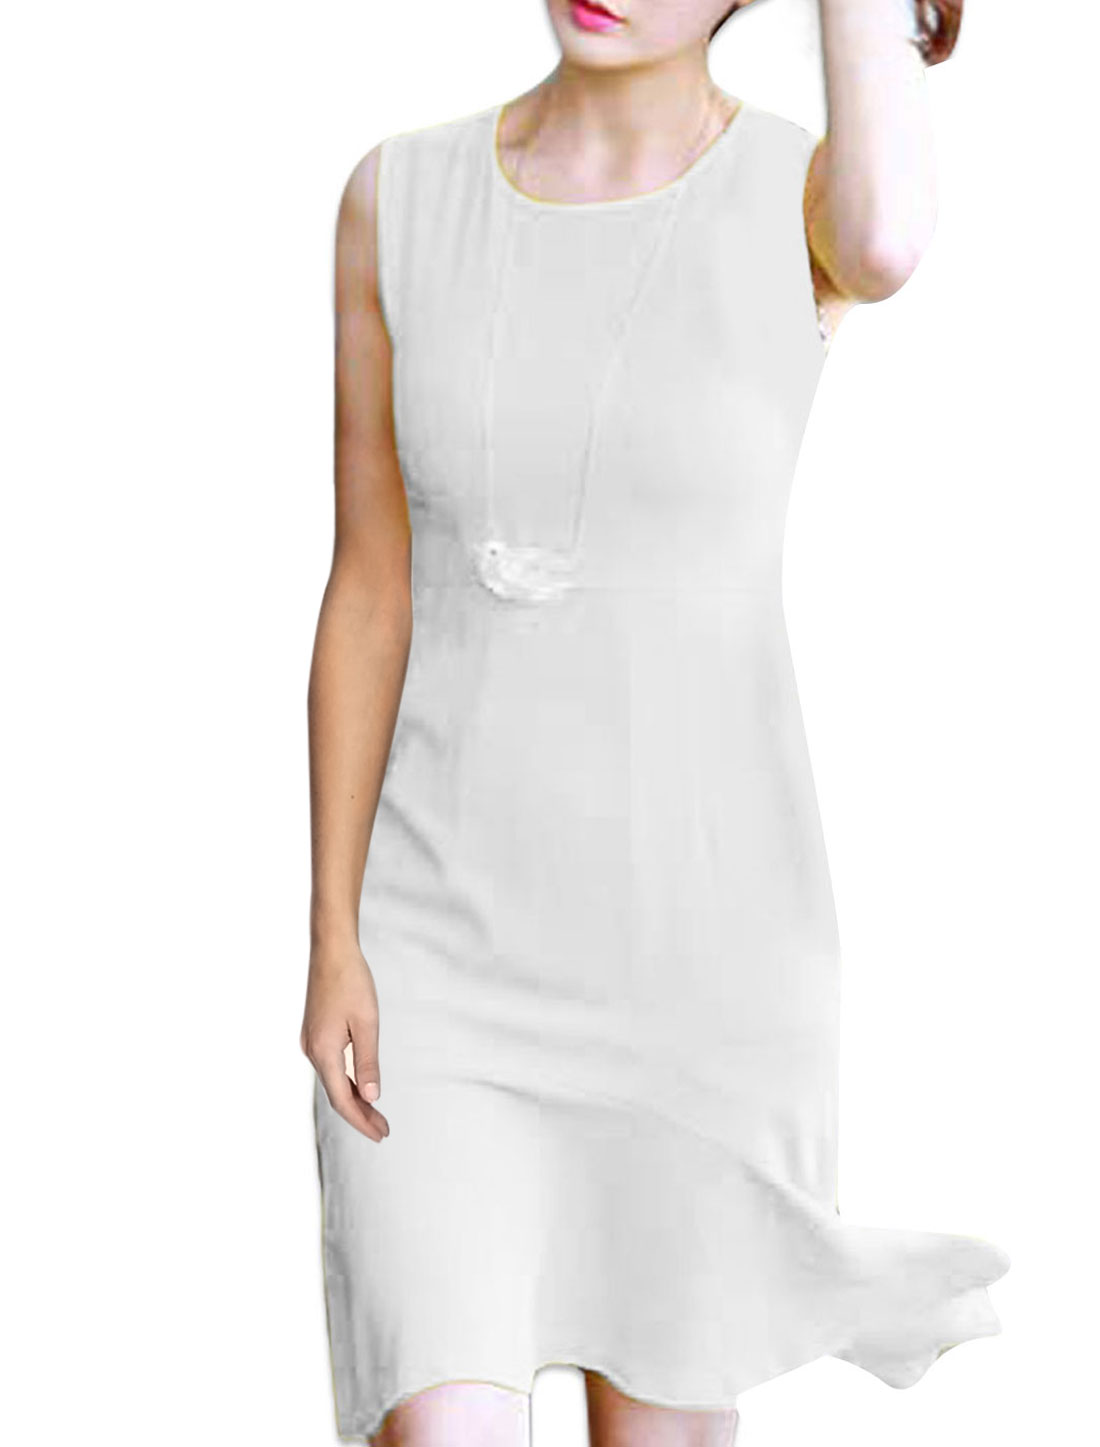 Ladies Slim Fit Round Neck Summer Fashionable Irregular Hem Dress White XS